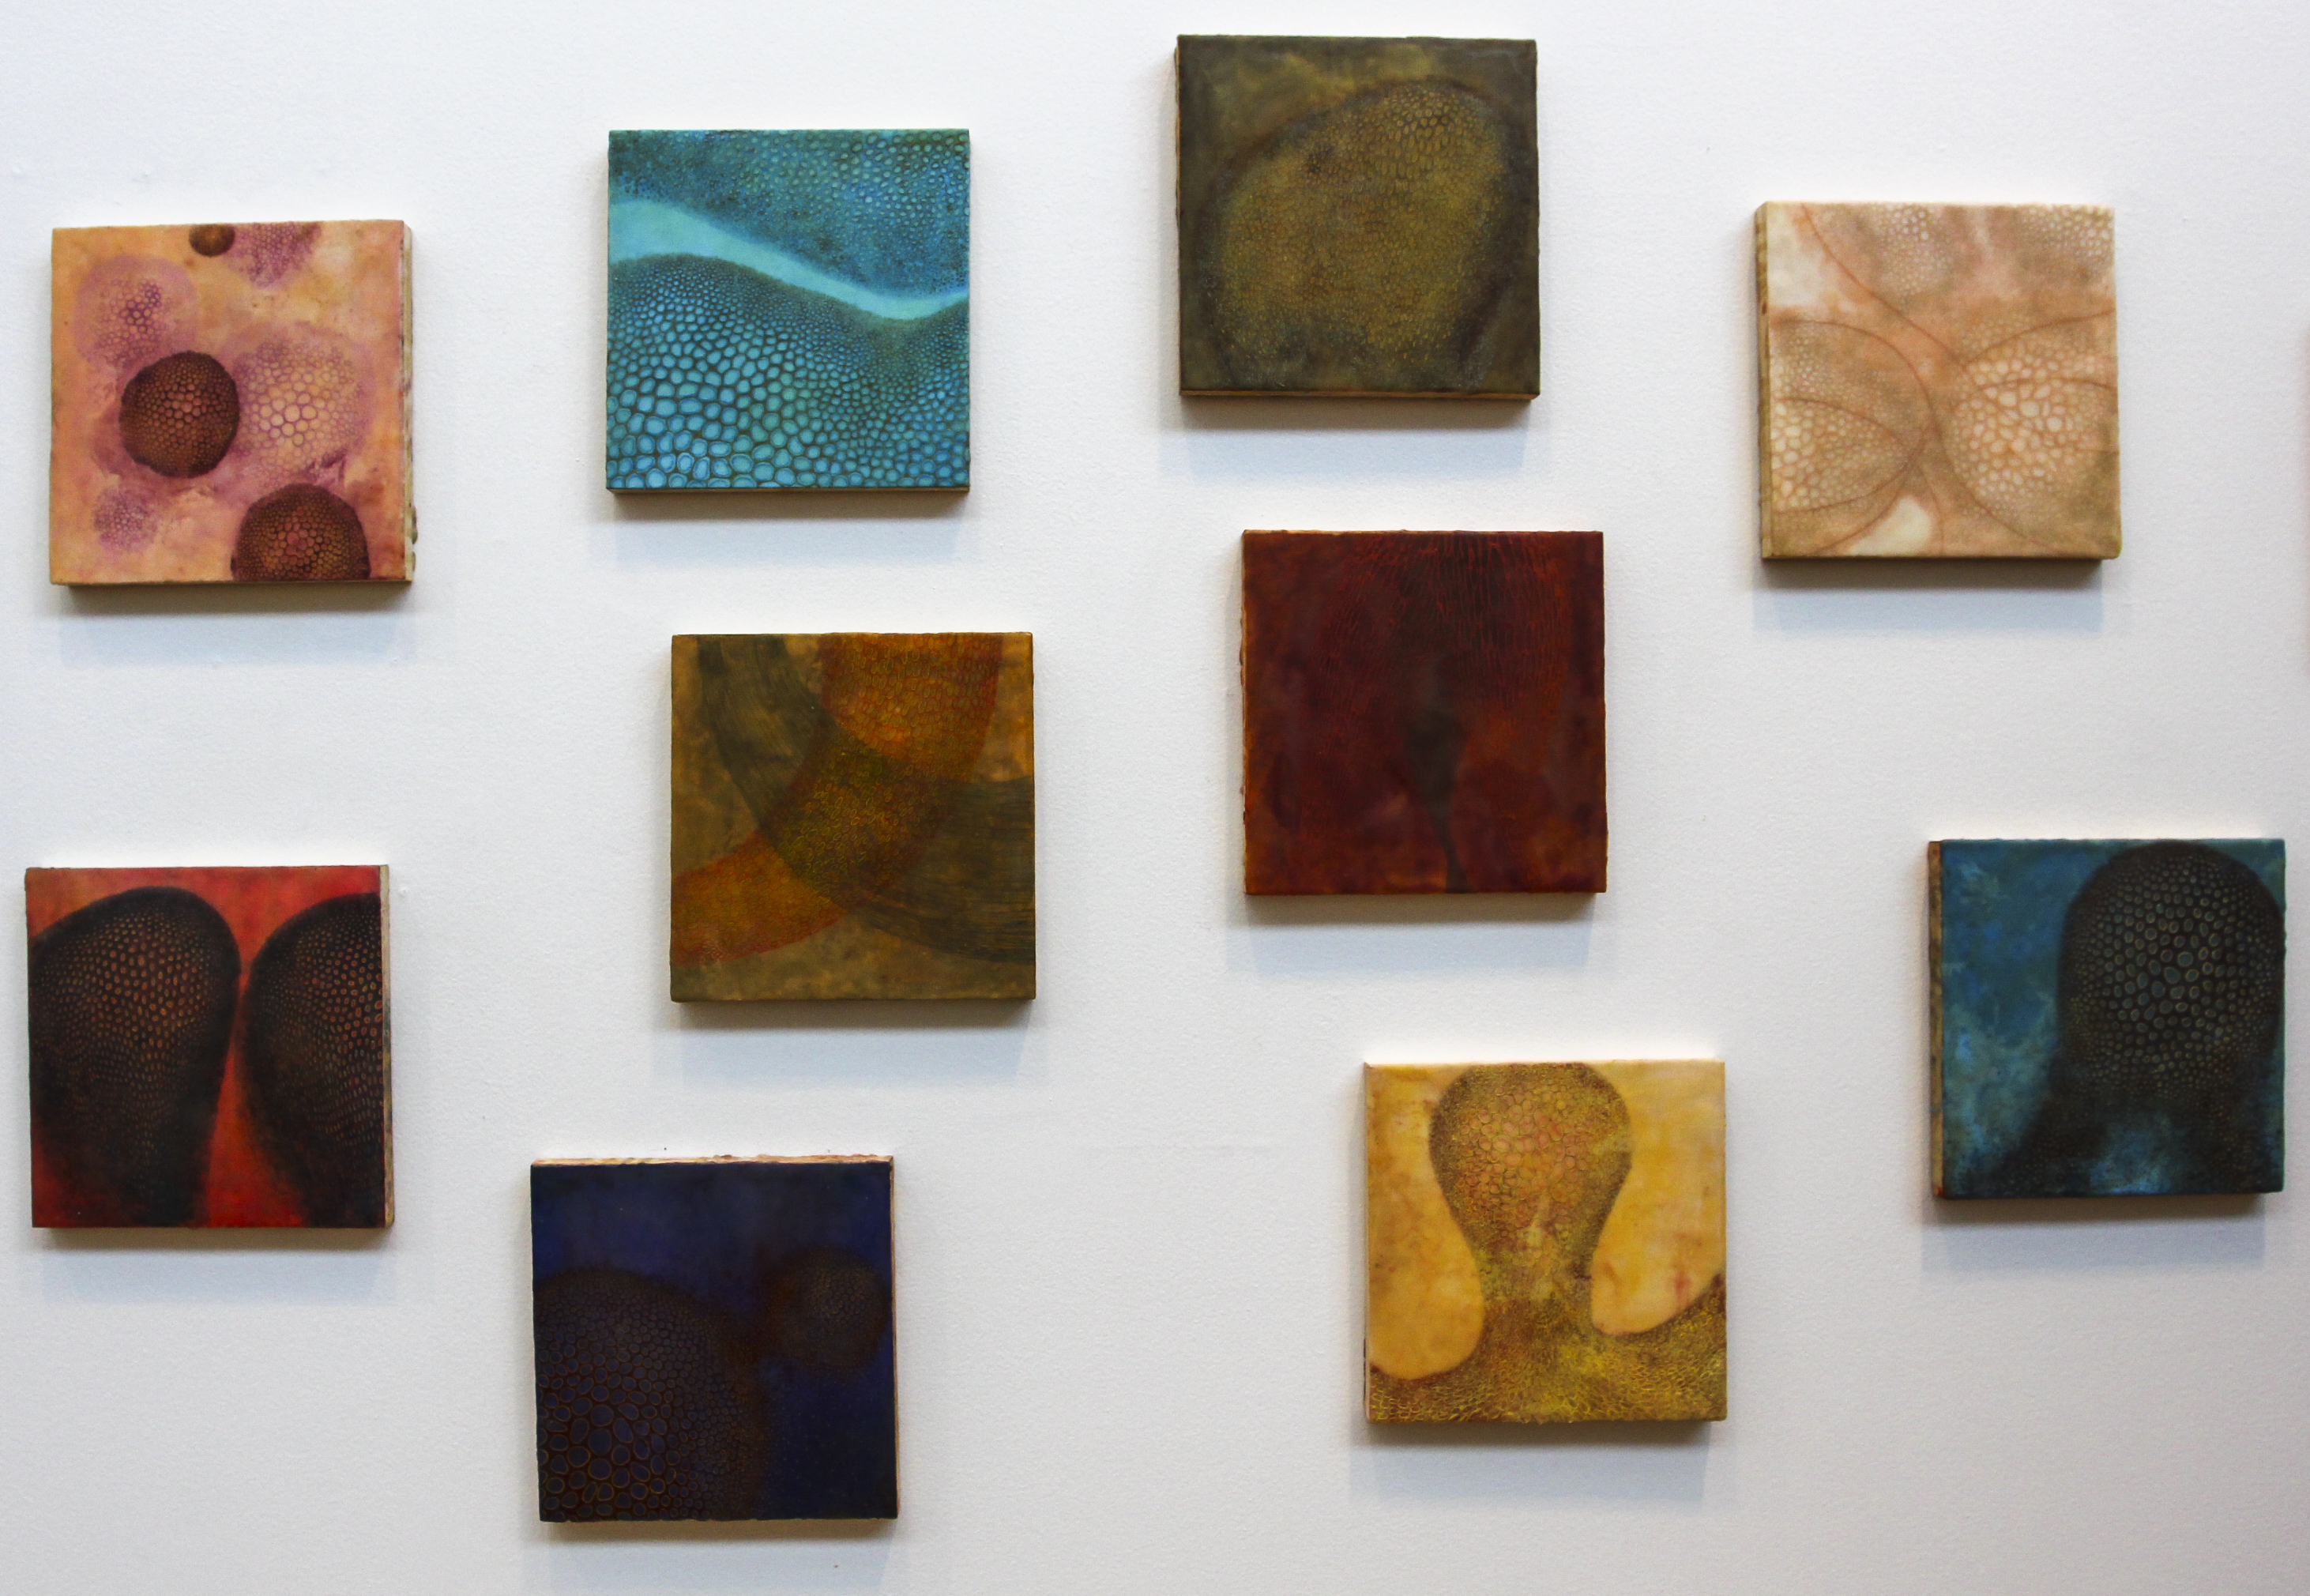 """In Coaxial Focus, Brooks Barwick juxtaposes the clinical experience of looking through a microscope lens with the delicacy of nature. His encaustic paintings feature nuanced blues, reds and purples that draw the viewer in and capture the way light shines through the thinnest flower petal. Intricately formed, Barwick's work includes dots and scrapes within the paint to forge a sense of movement. """"I've been thinking a lot about biological forms, organic forms,"""" he said. """"It's about cosmic versus microscopic, big versus small."""""""